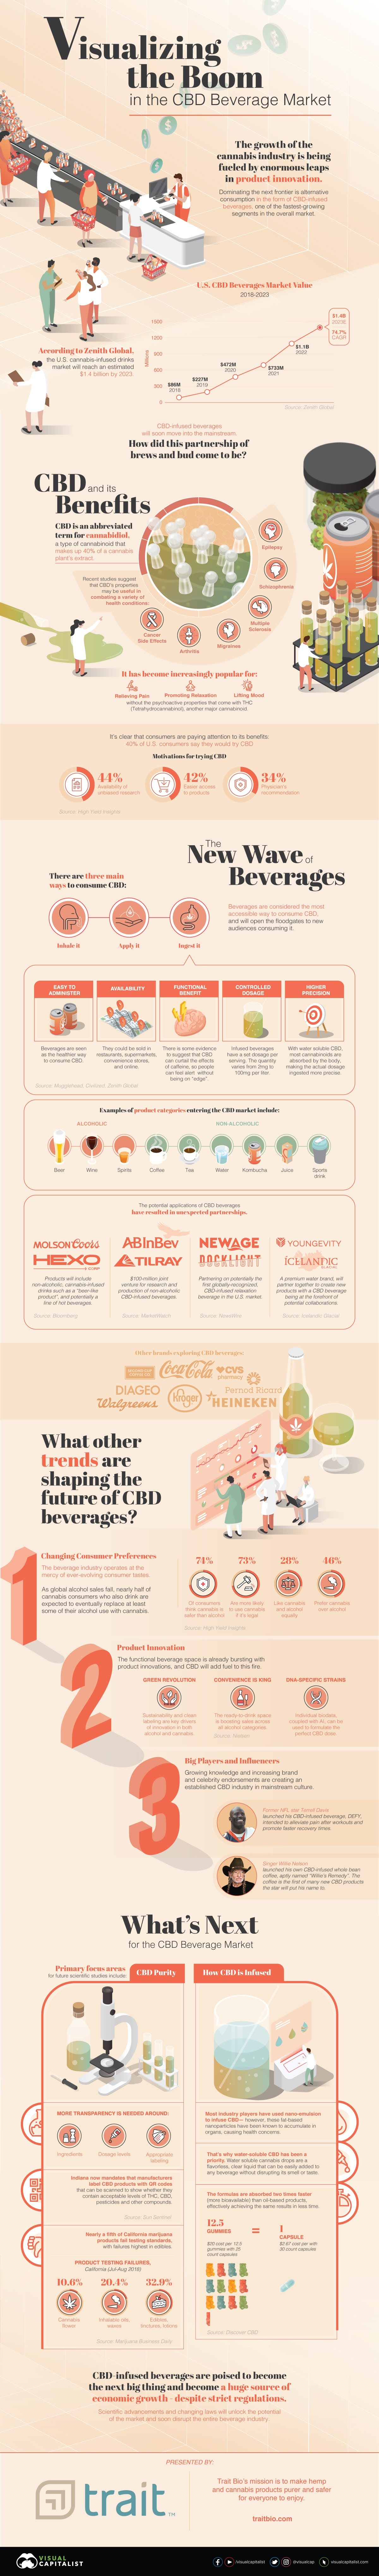 visualizing-the-boom-in-the-cbd-beverage-market-infographic